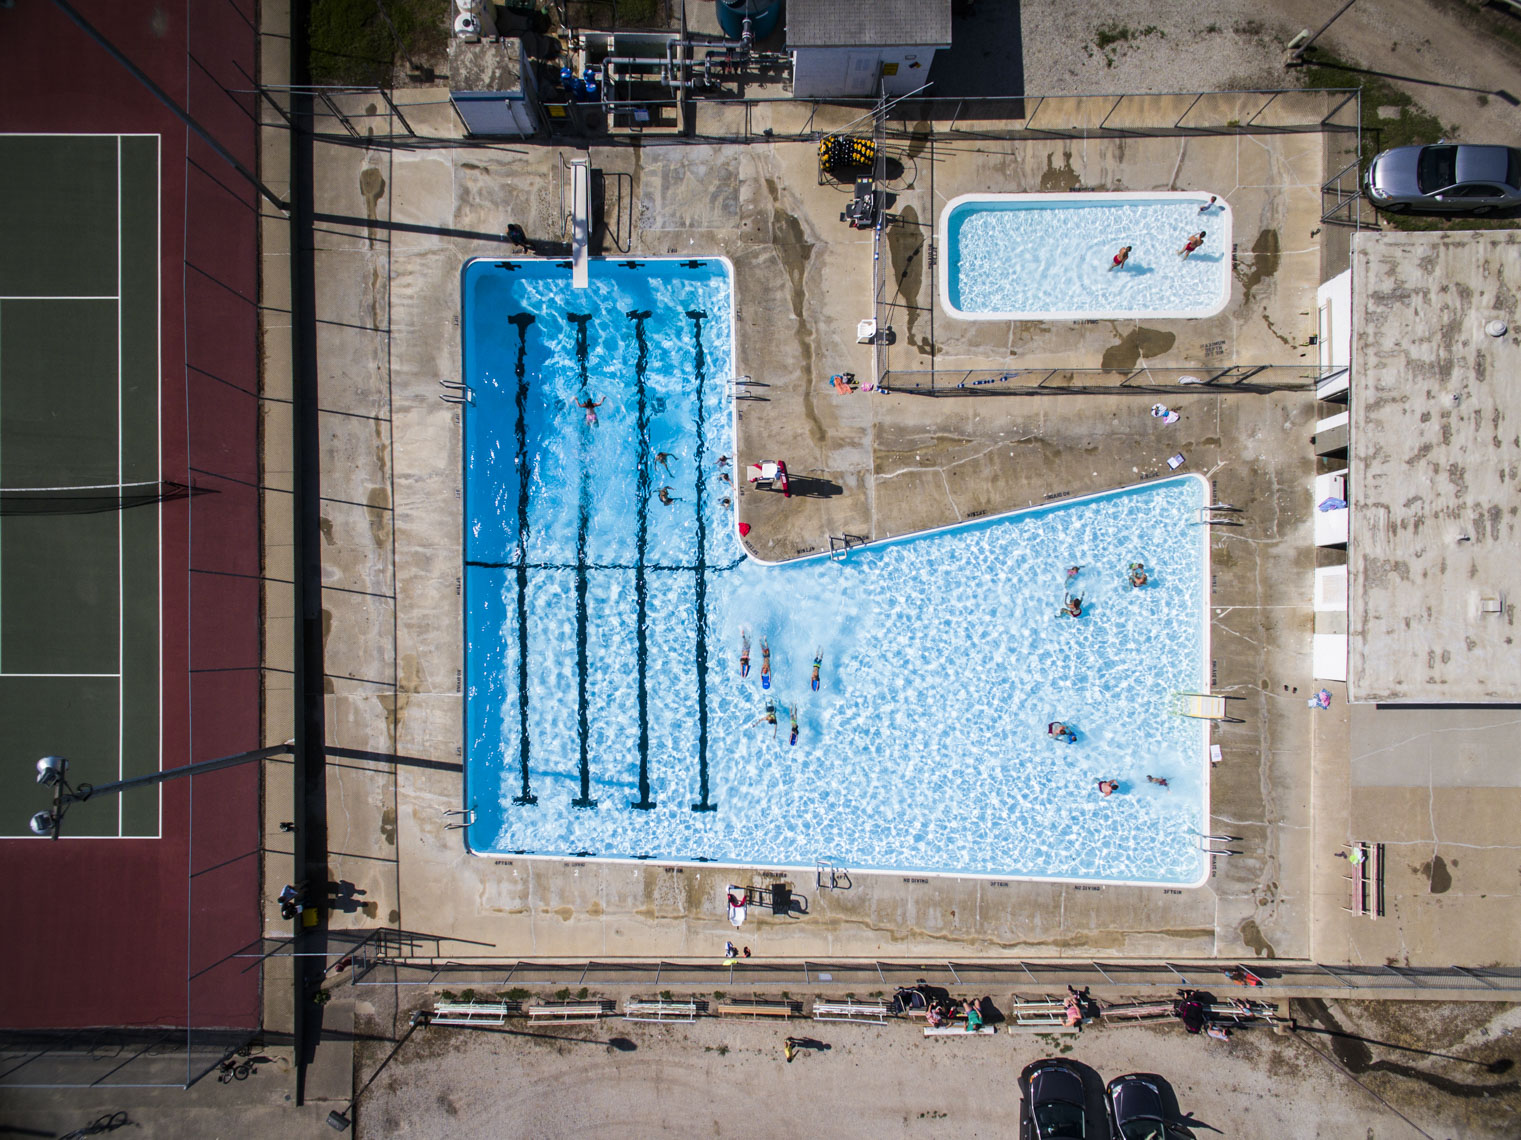 Aerial view of a community pool in Iowa.